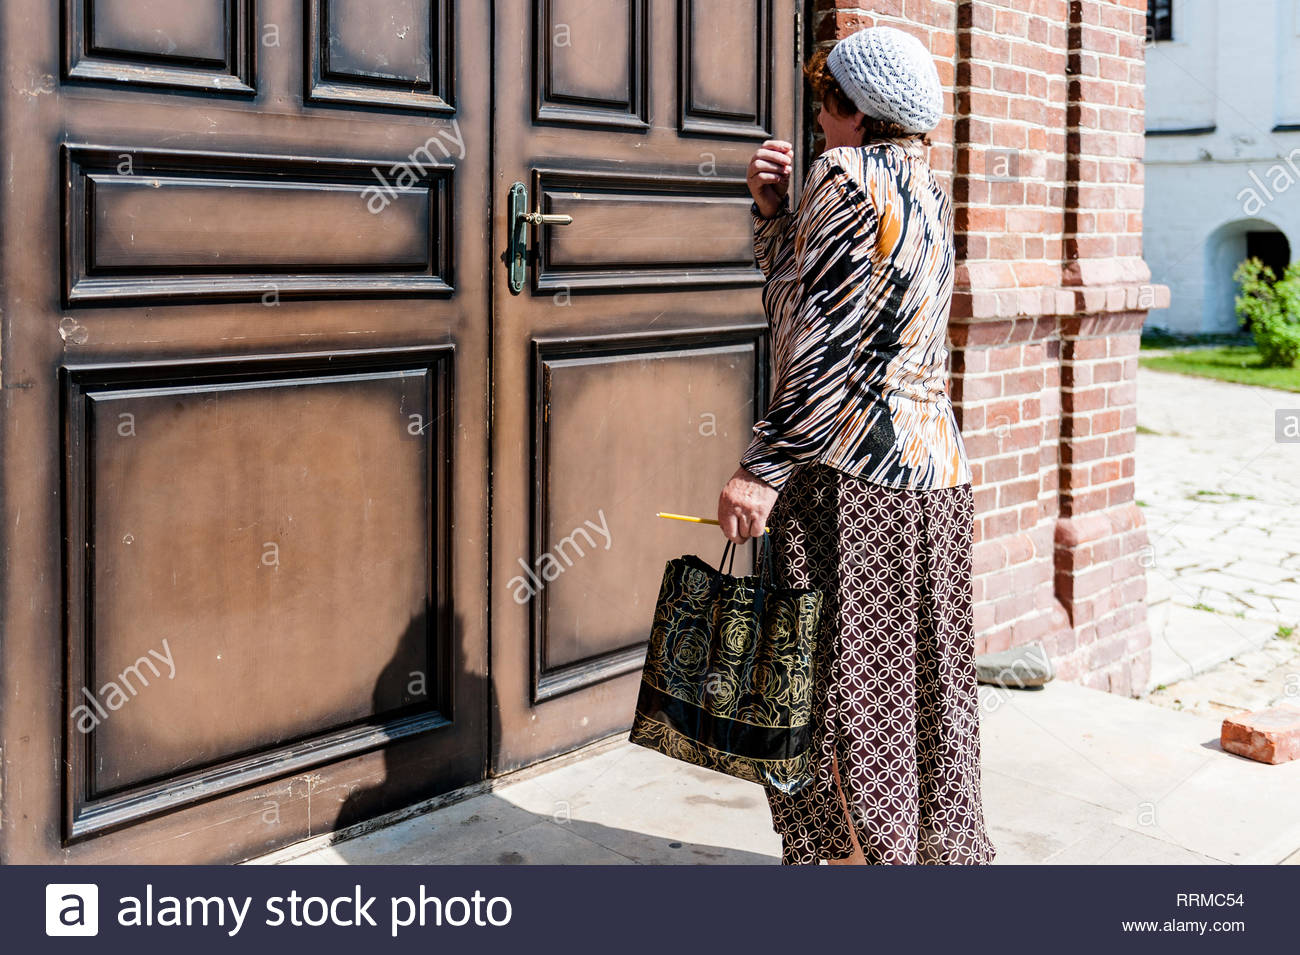 Russian woman with headscarf in front of church door - Stock Image